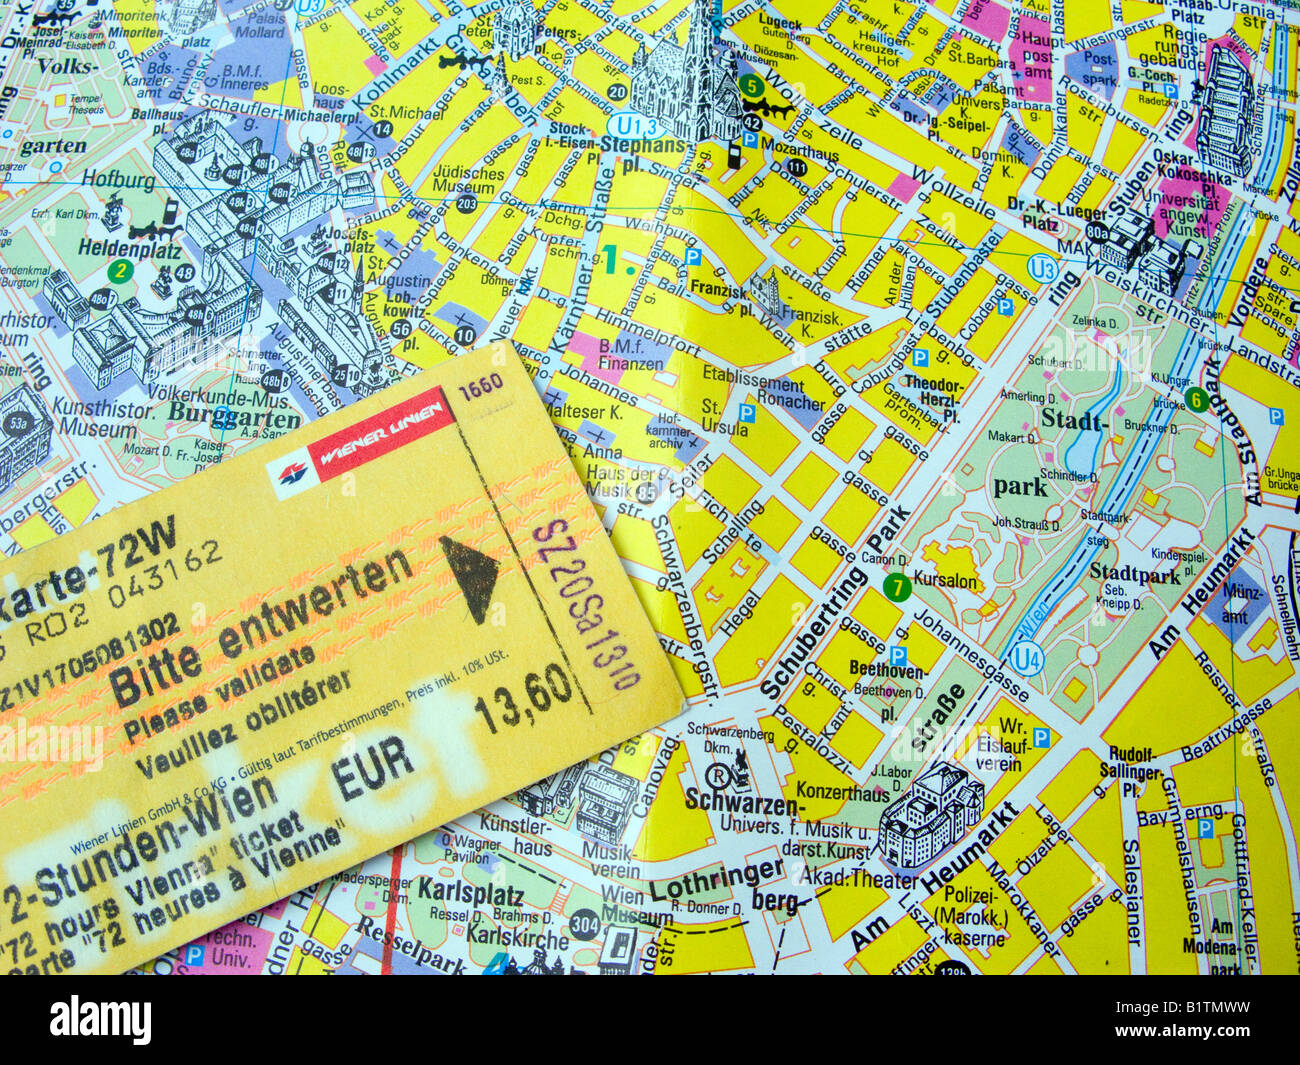 3 day usage U Bahn Metro ticket and map of central Vienna Austria Stock Photo